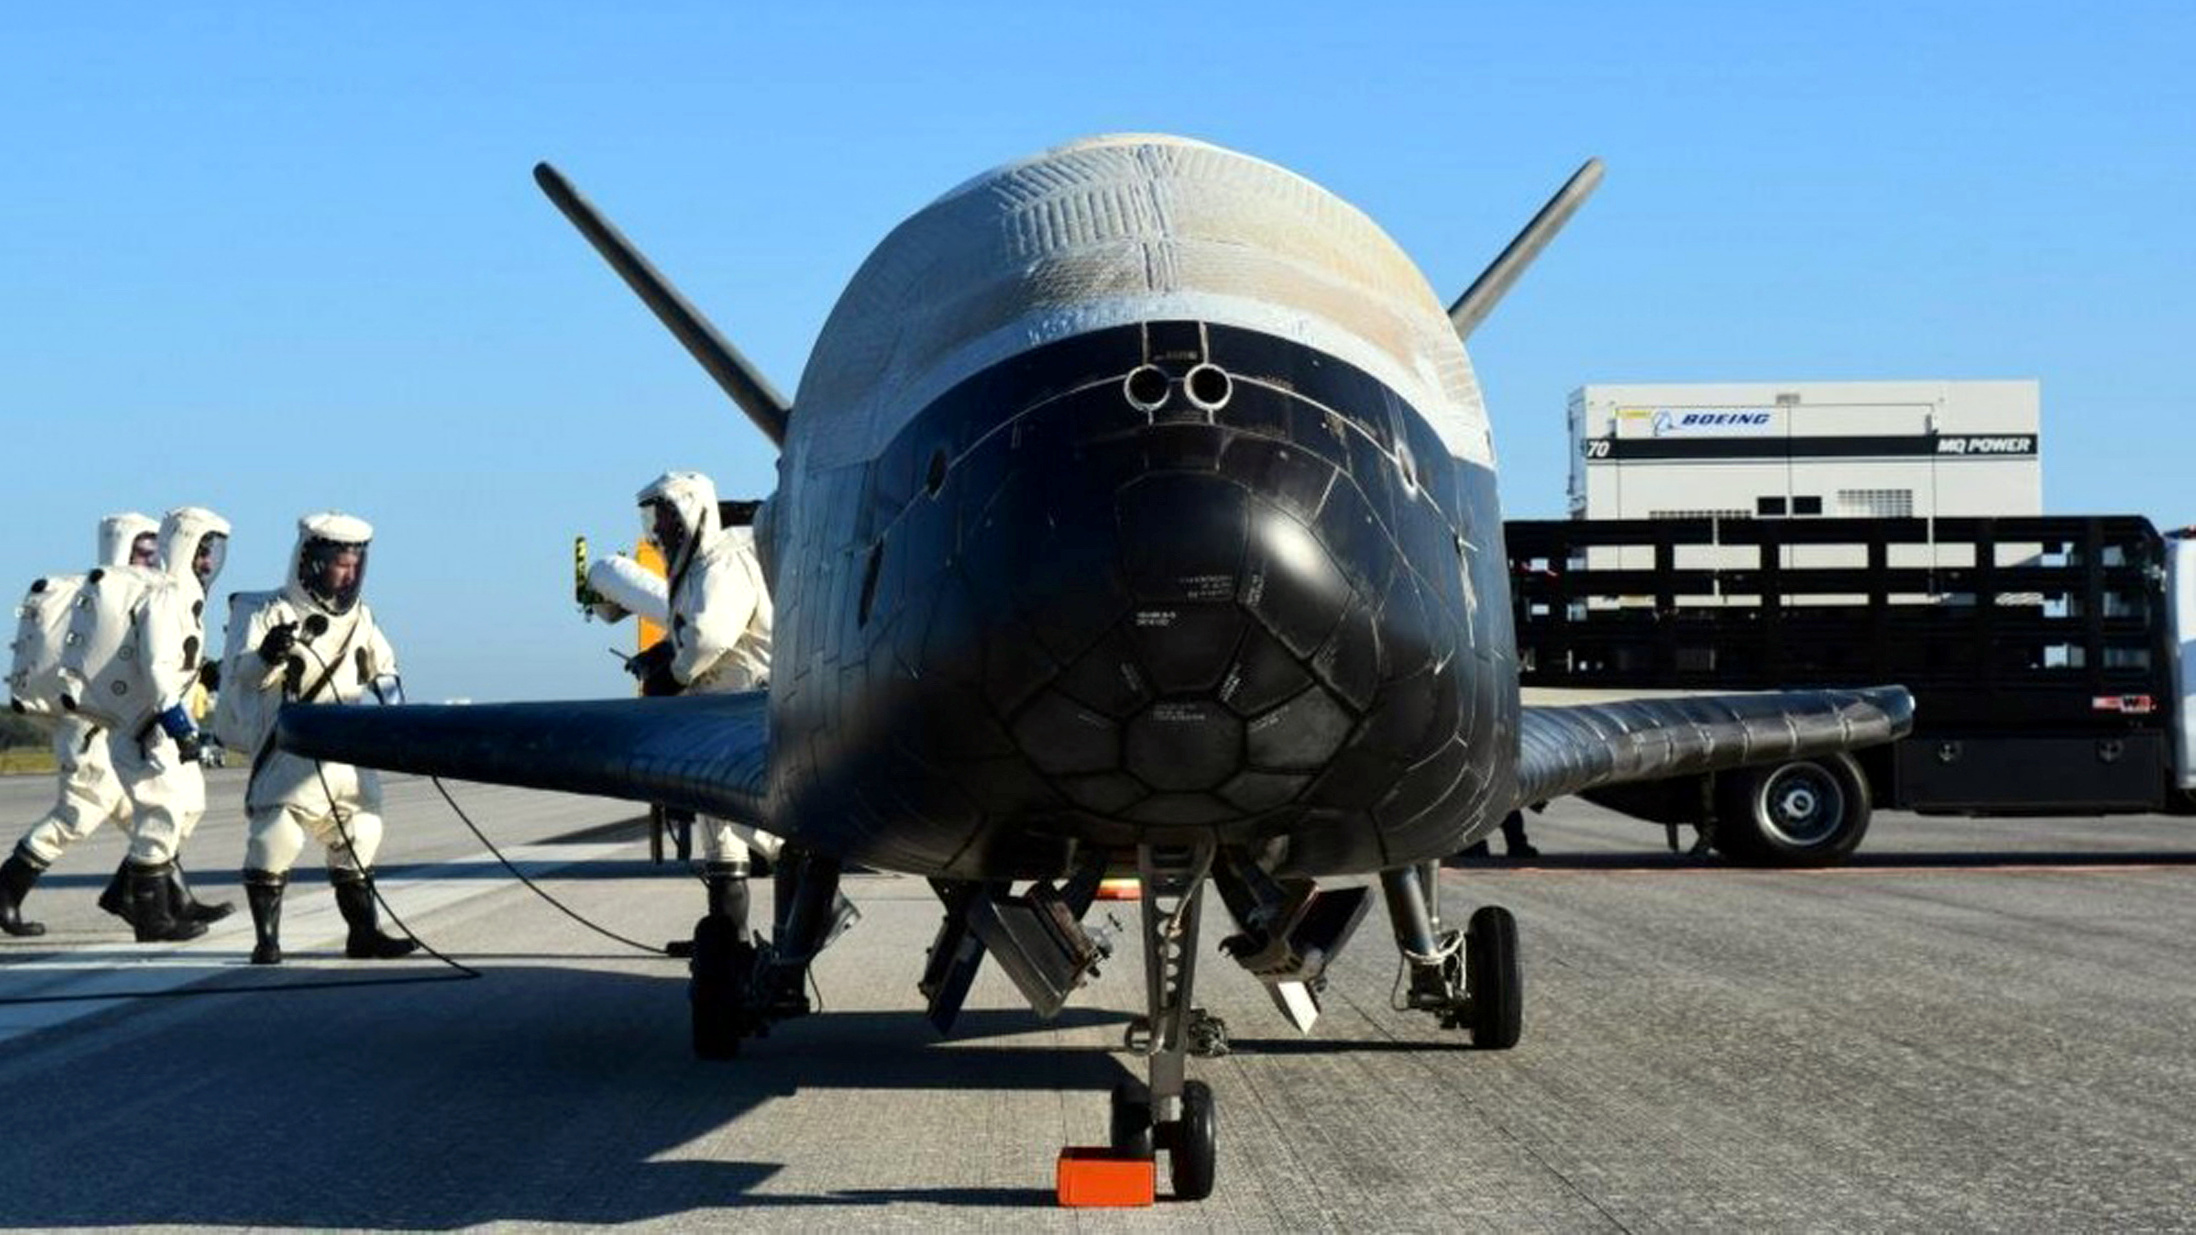 The U.S. Airforce's X-37B Orbital Test Vehicle mission 4 after landing at NASA's Kennedy Space Center Shuttle Landing Facility in Cape Canaveral, Florida, U.S., May 7, 2017.